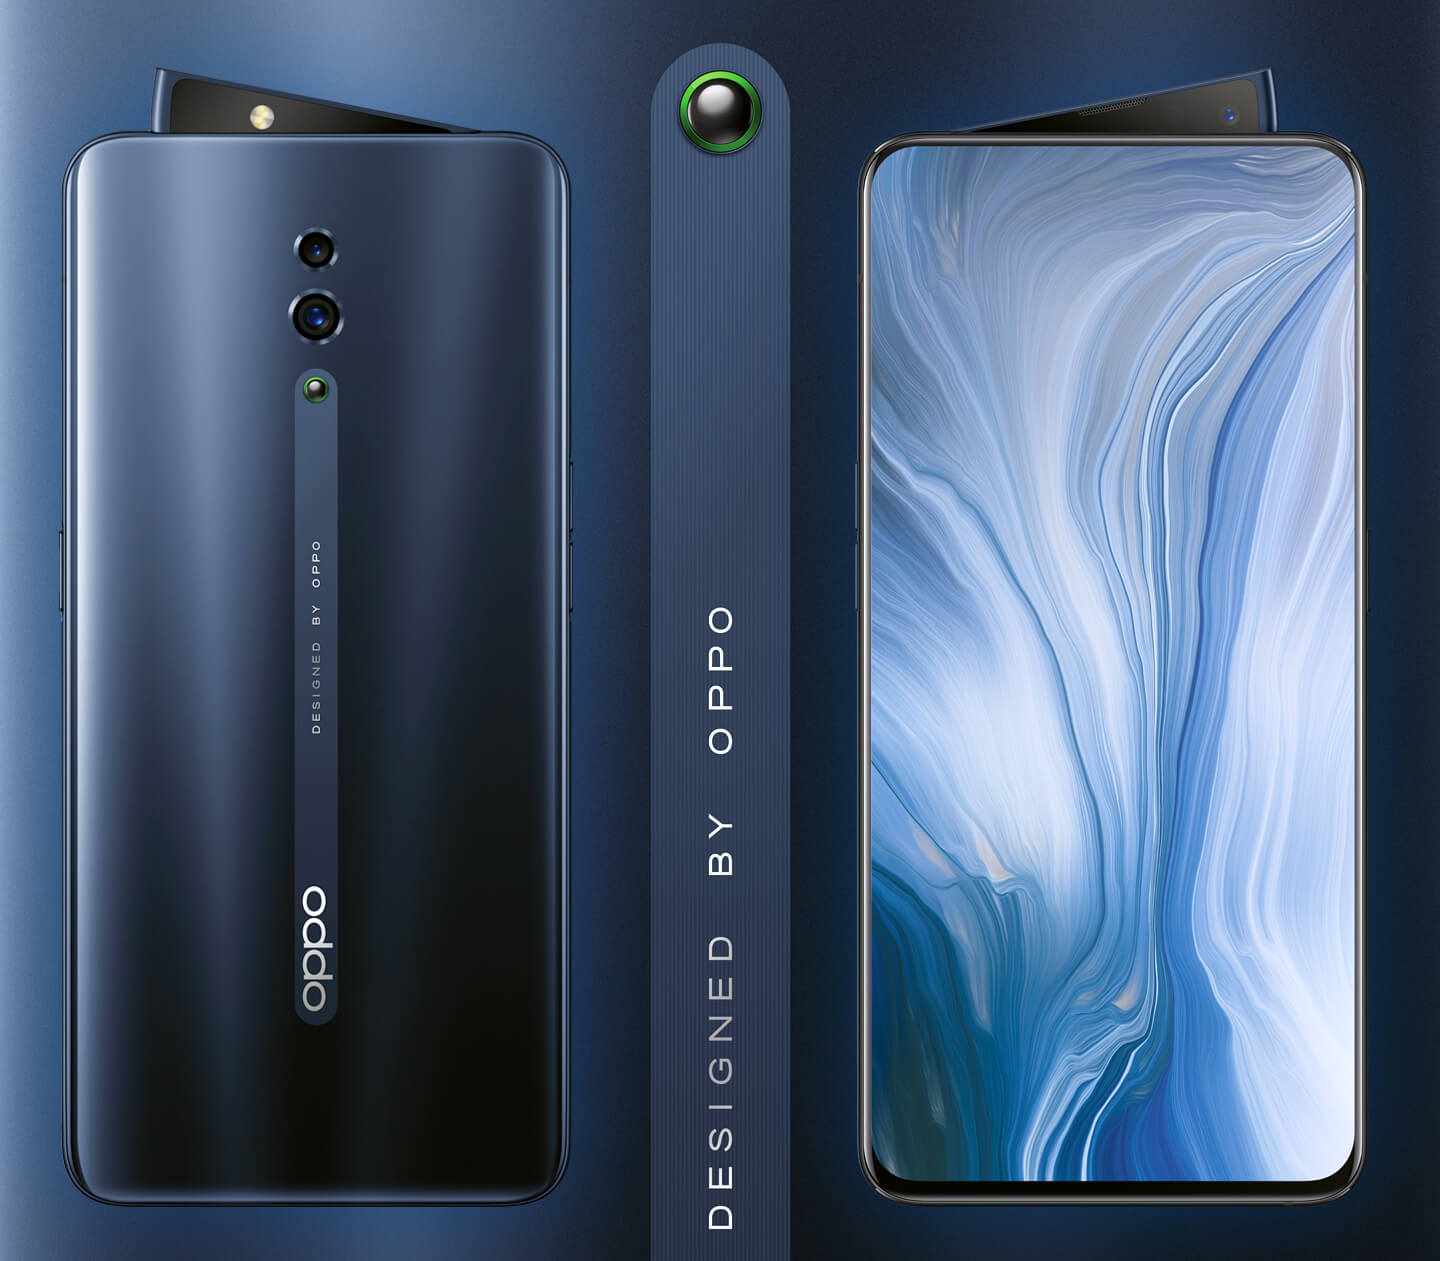 Oppo Reno reviews